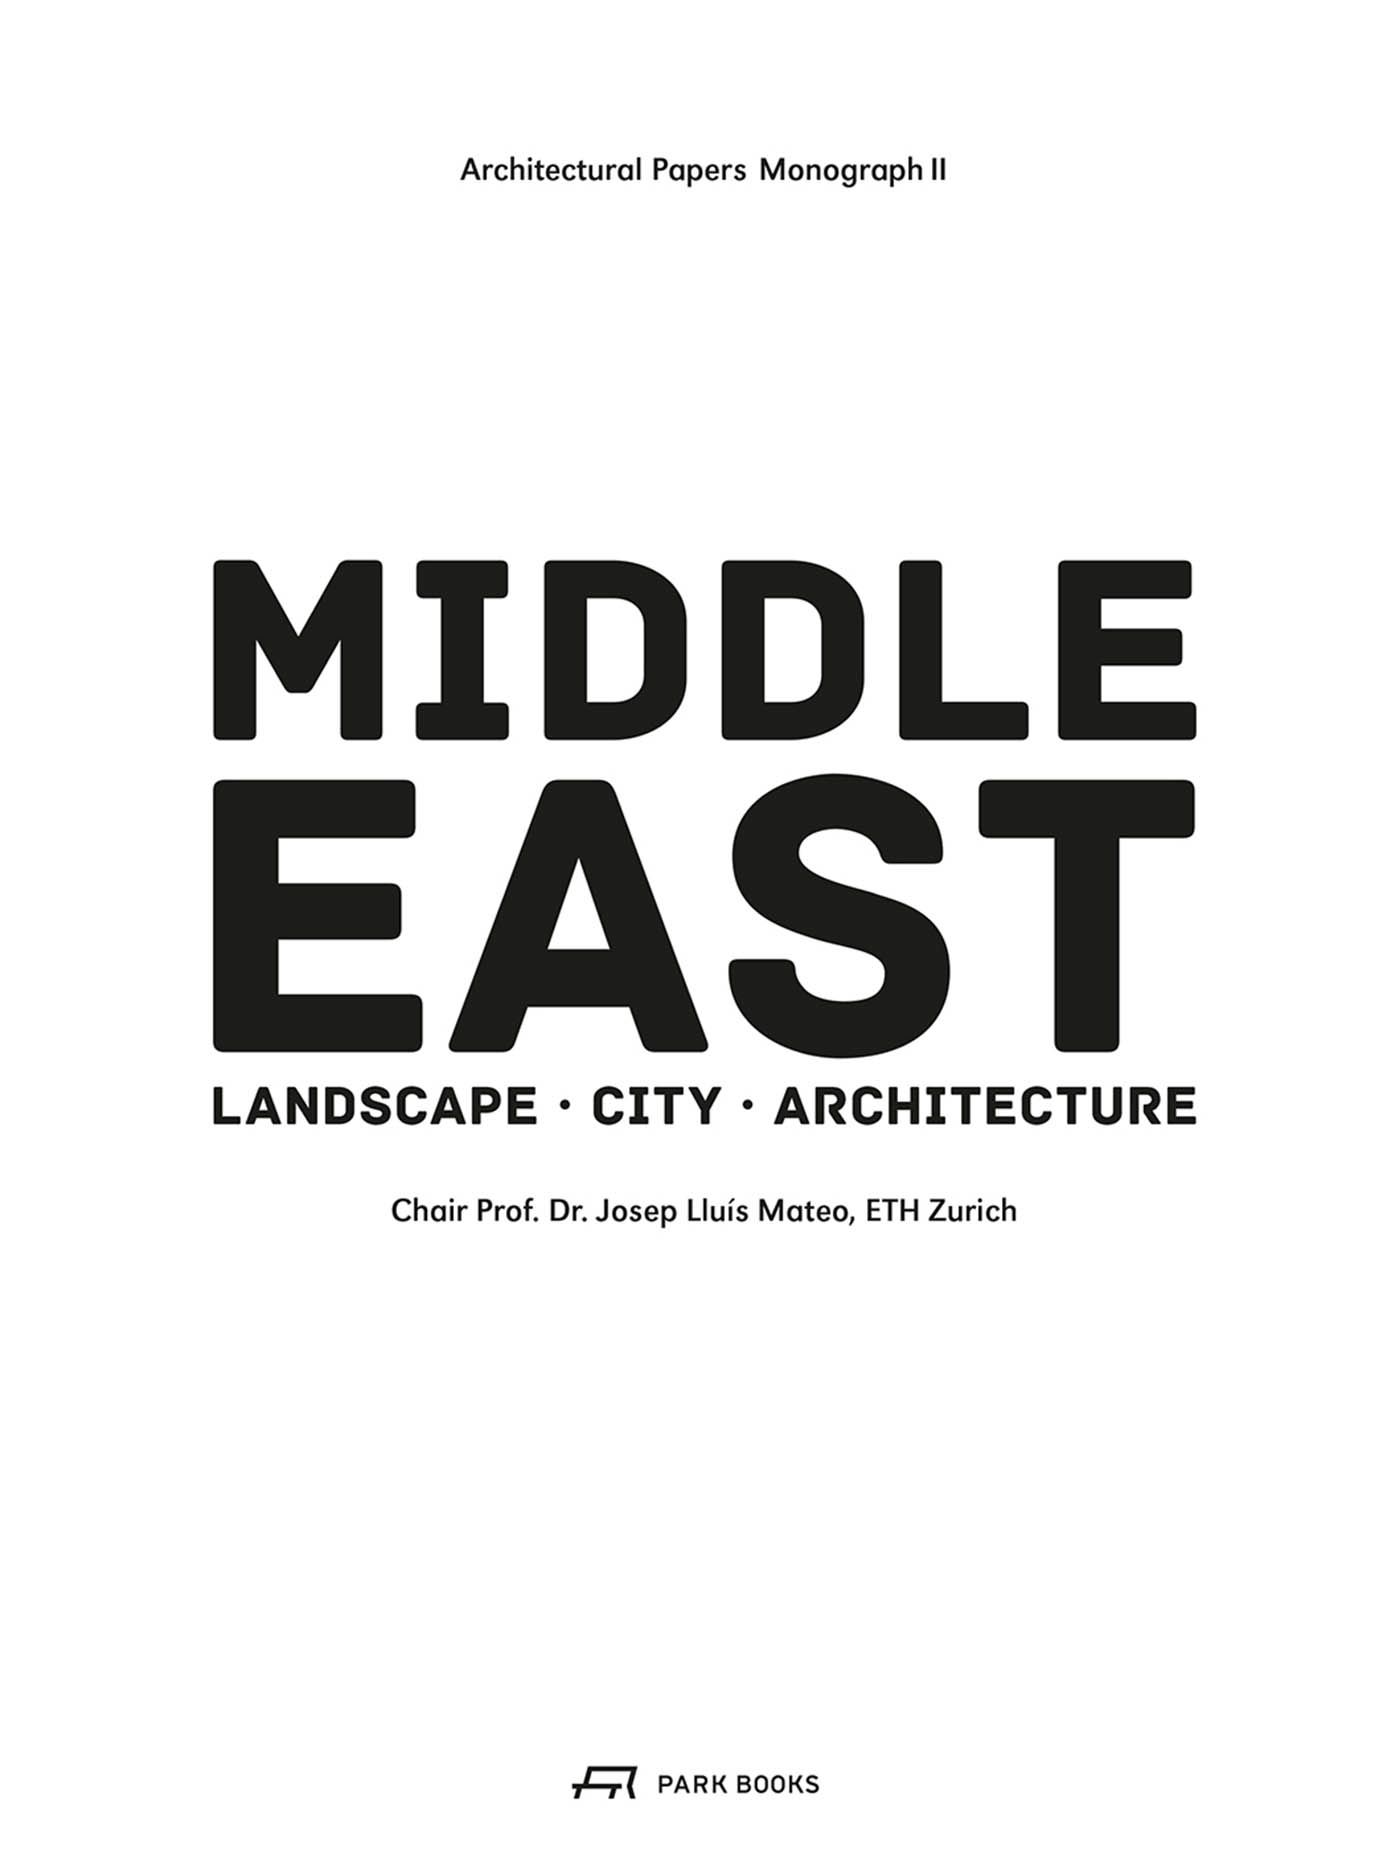 Middle East: Landscape, City, Architecture